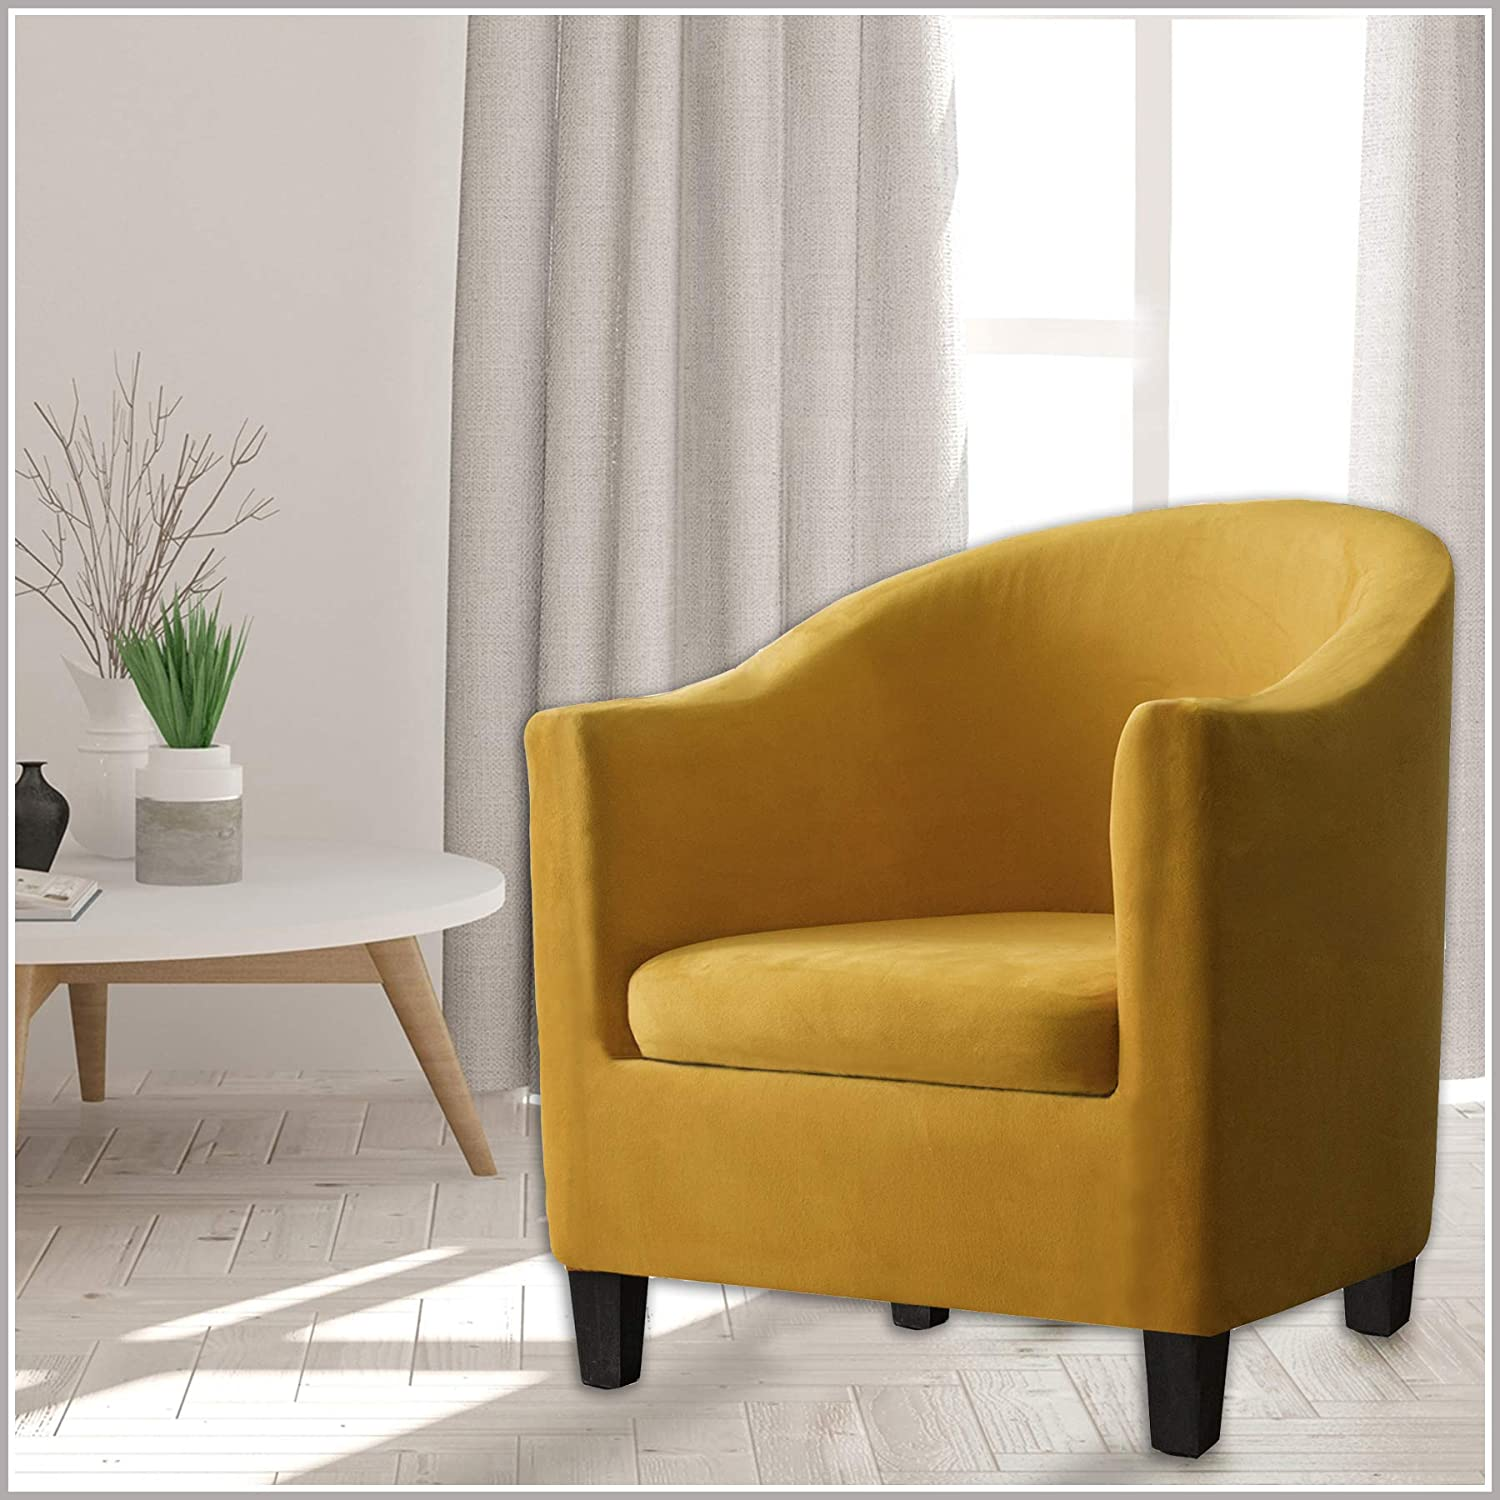 Camel,1 SHENGYIJING 2 Piece Velvet Tub Chair Covers for Armchairs,Spandex Tub Chair Slipcovers,Stretch Tub Chair Slipcover Furniture Protector Cover Sofa Slipcover for Tub Chair